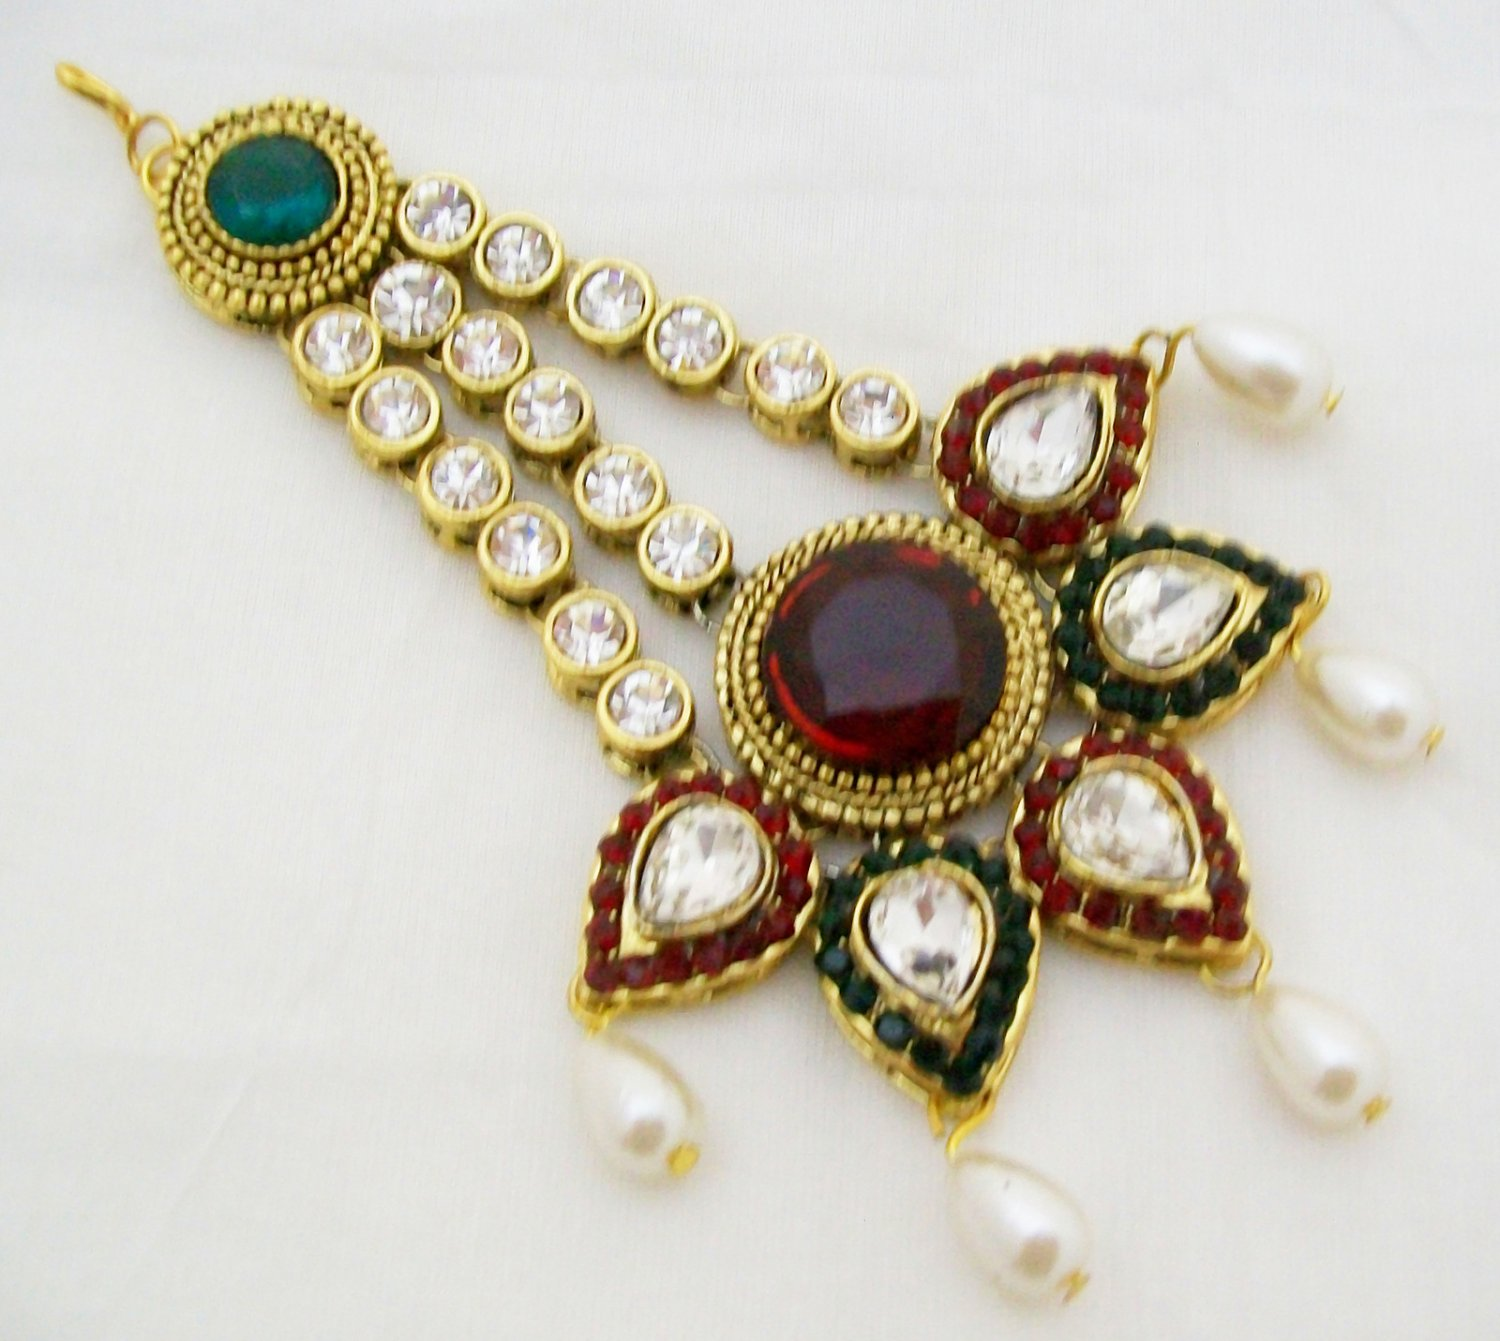 Big Antique Style Kundan Jhoomar Indian Wedding Hair Jewellery